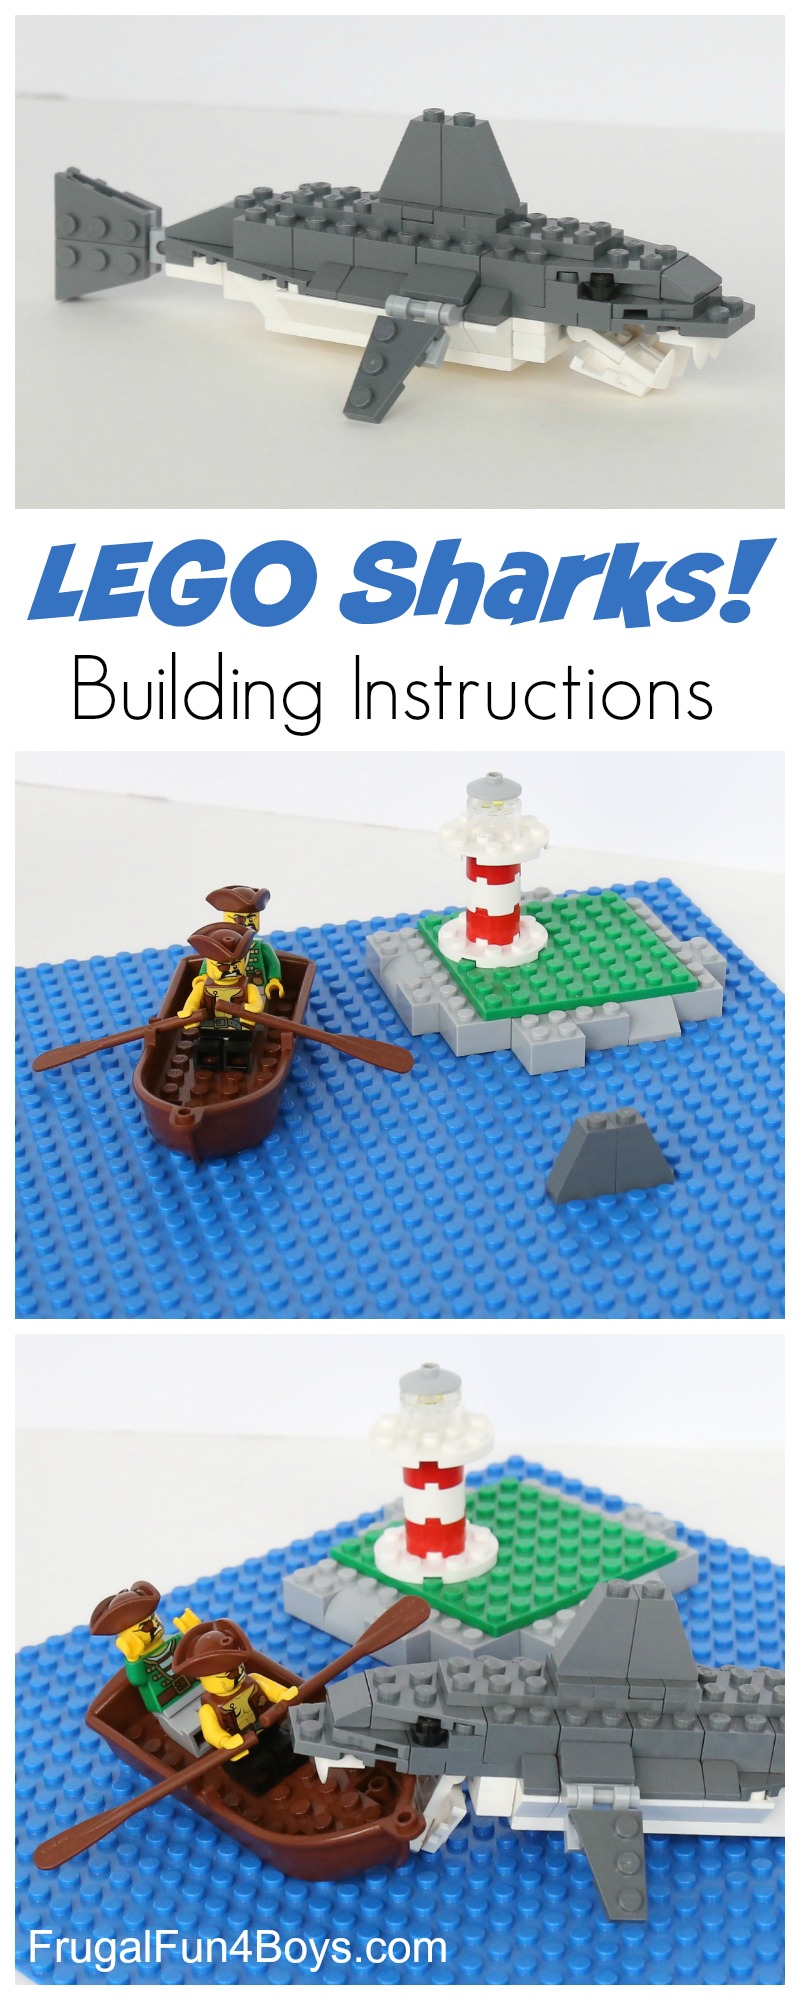 How to Build Awesome LEGO Sharks